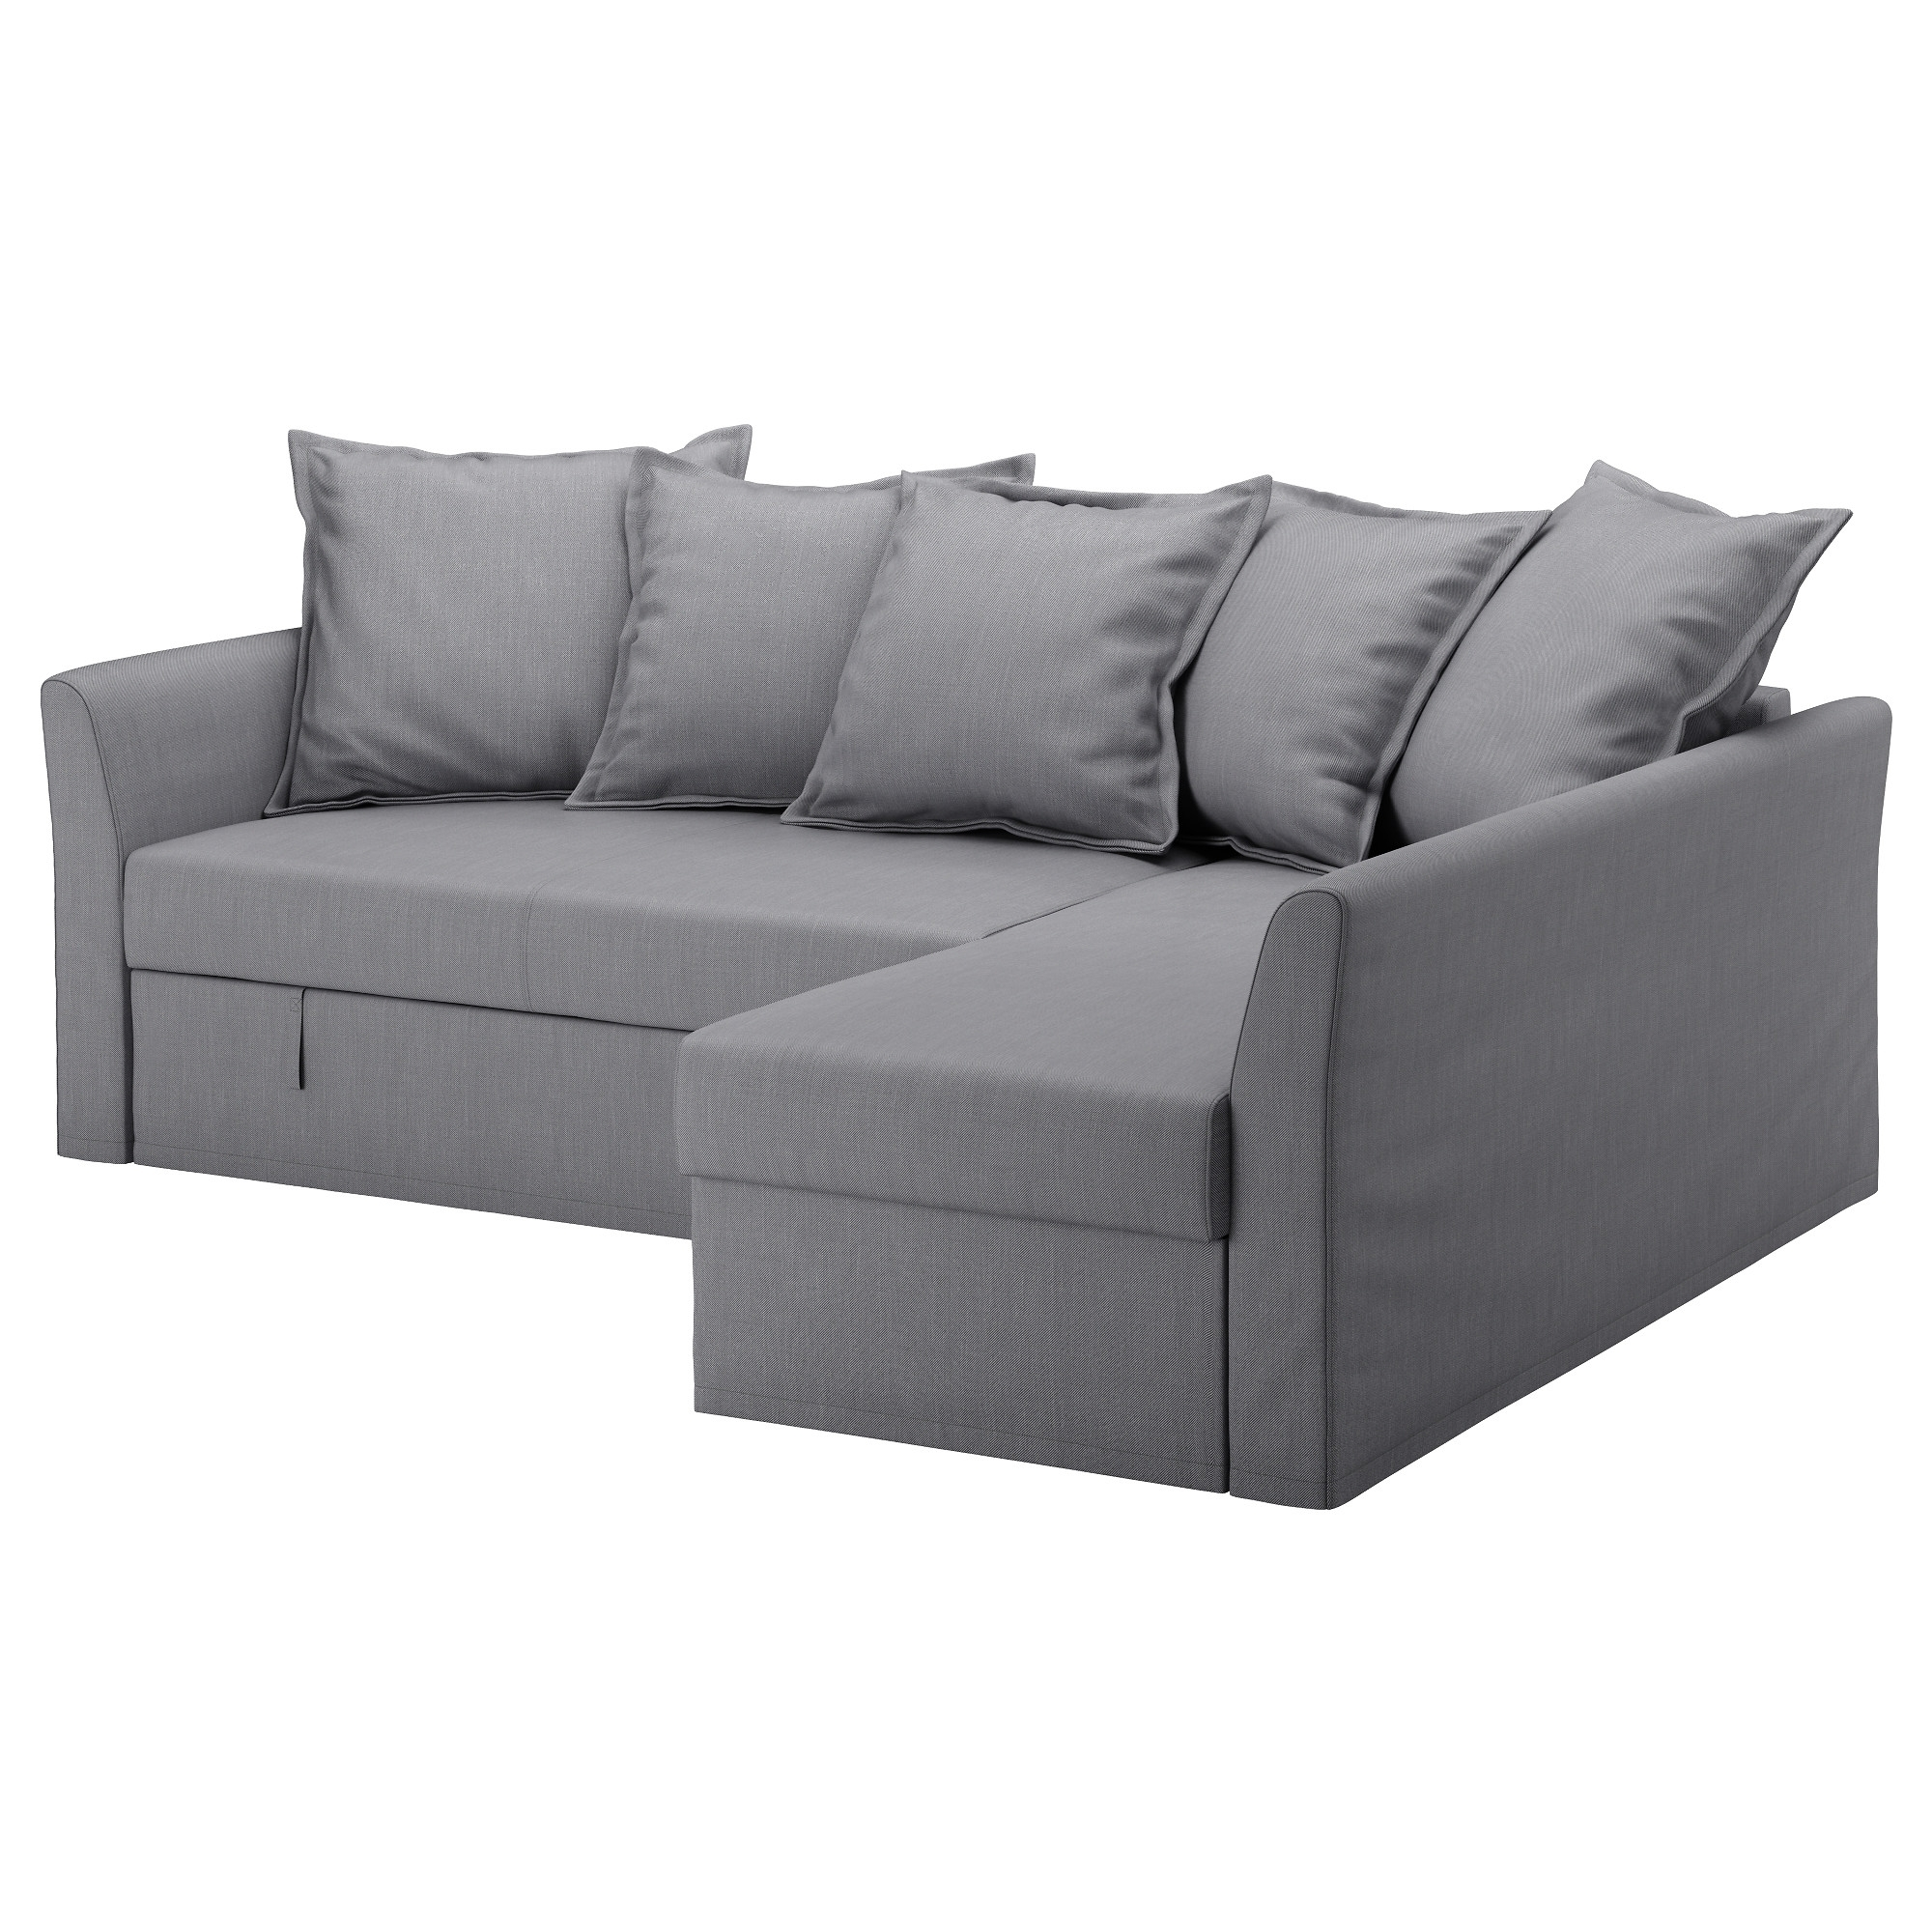 Holmsund Corner Sofa-Bed - Nordvalla Beige - Ikea for Ikea Corner Sofas With Storage (Image 9 of 10)